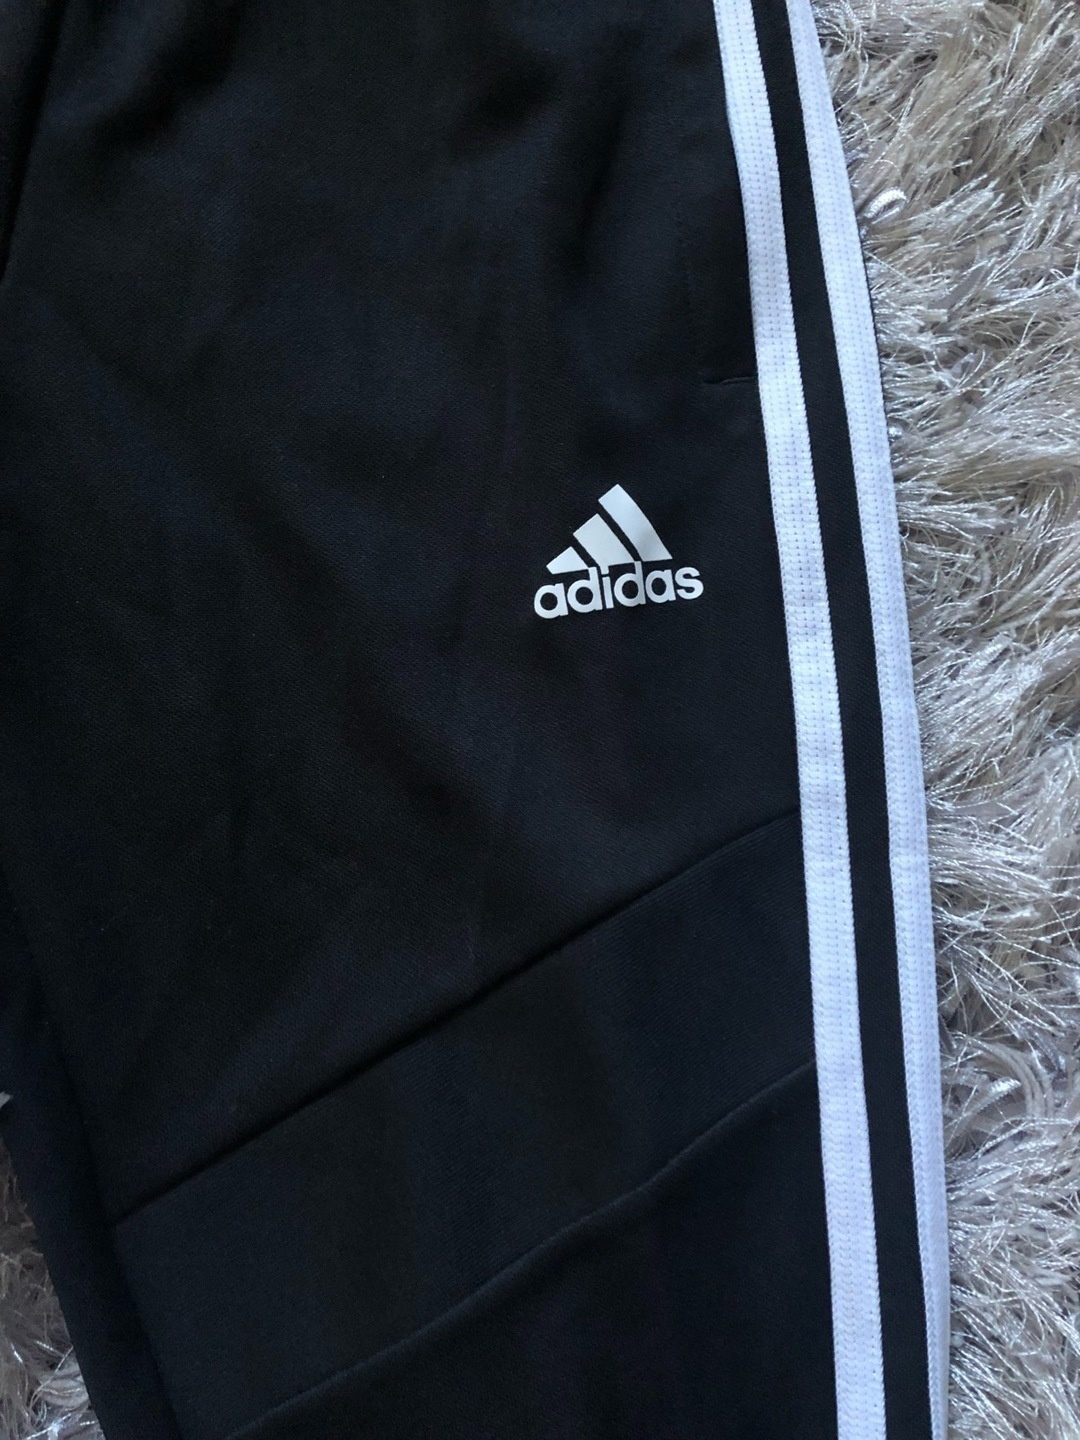 Women's trousers & jeans - ADIDAS photo 2